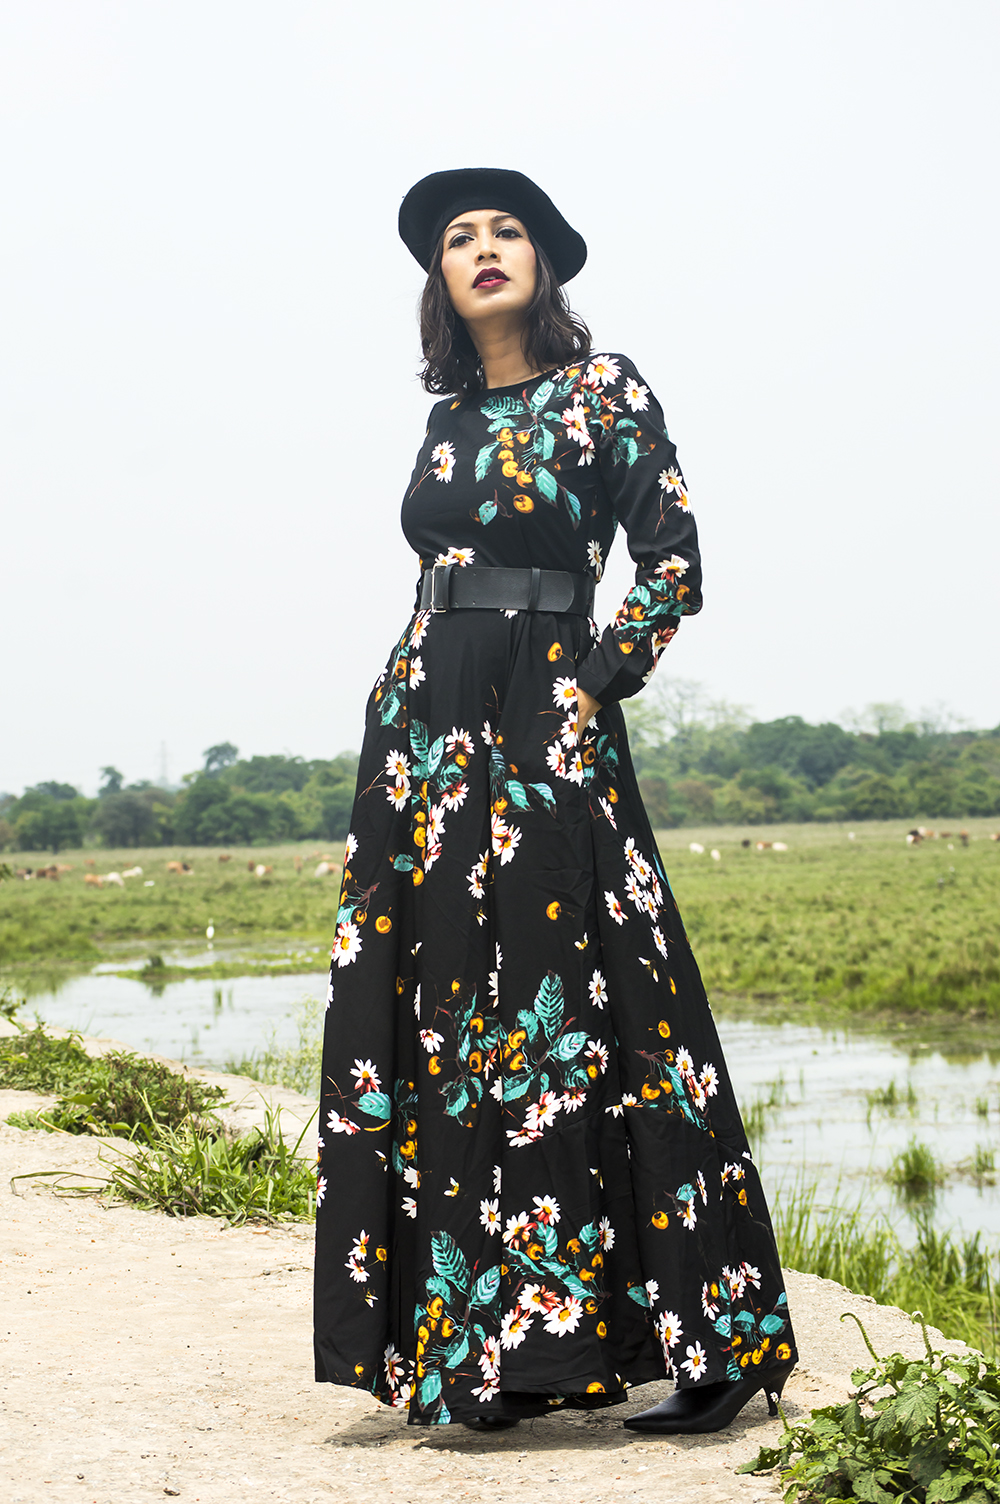 Floral Dresses, Fashion, Style, Fashion Blogger, Maxi Dress, Street Style-5